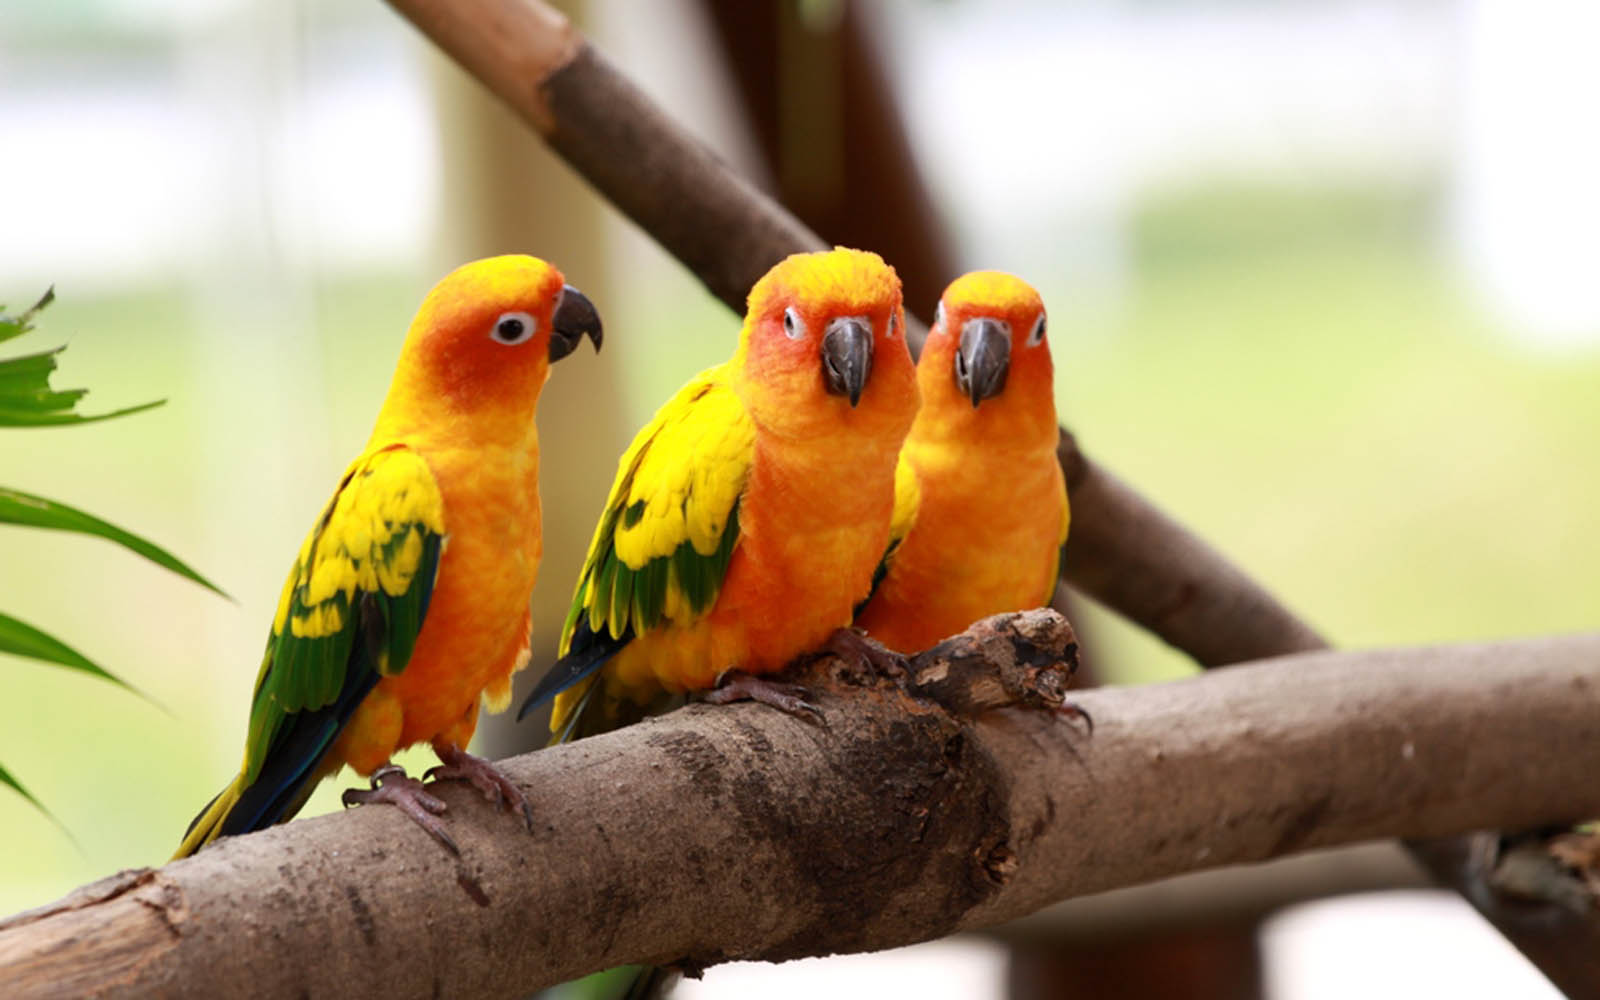 Love Birds Wallpaper Free Download For Pc: Wallpapers: Love Birds Wallpapers